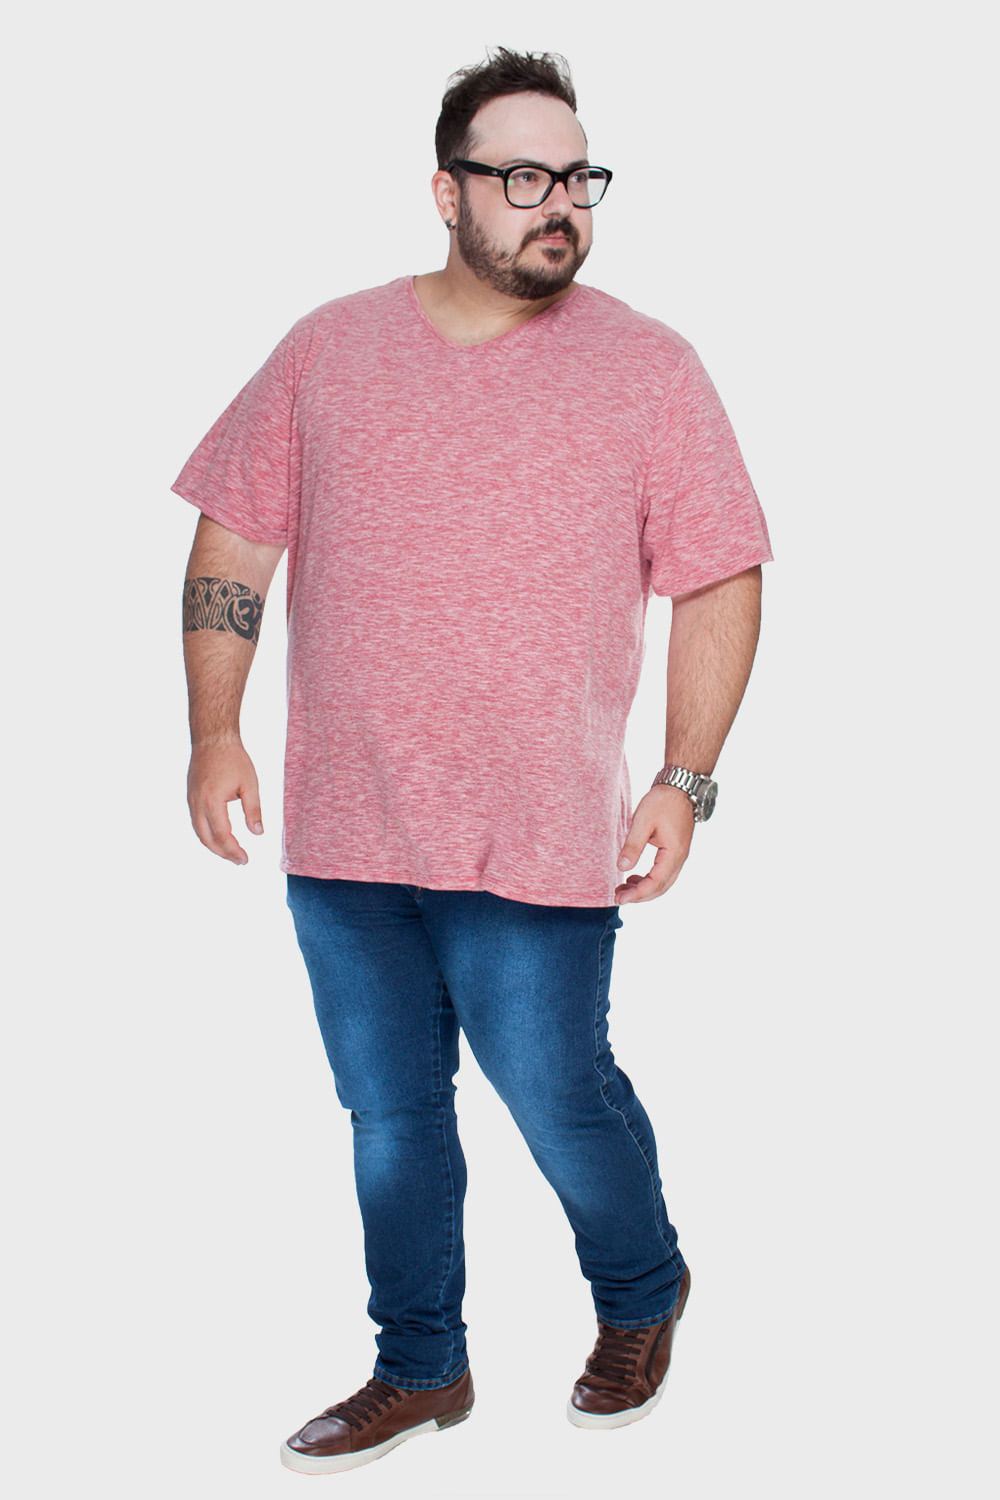 Calca-Jeans-Slim-Plus-Size_T1